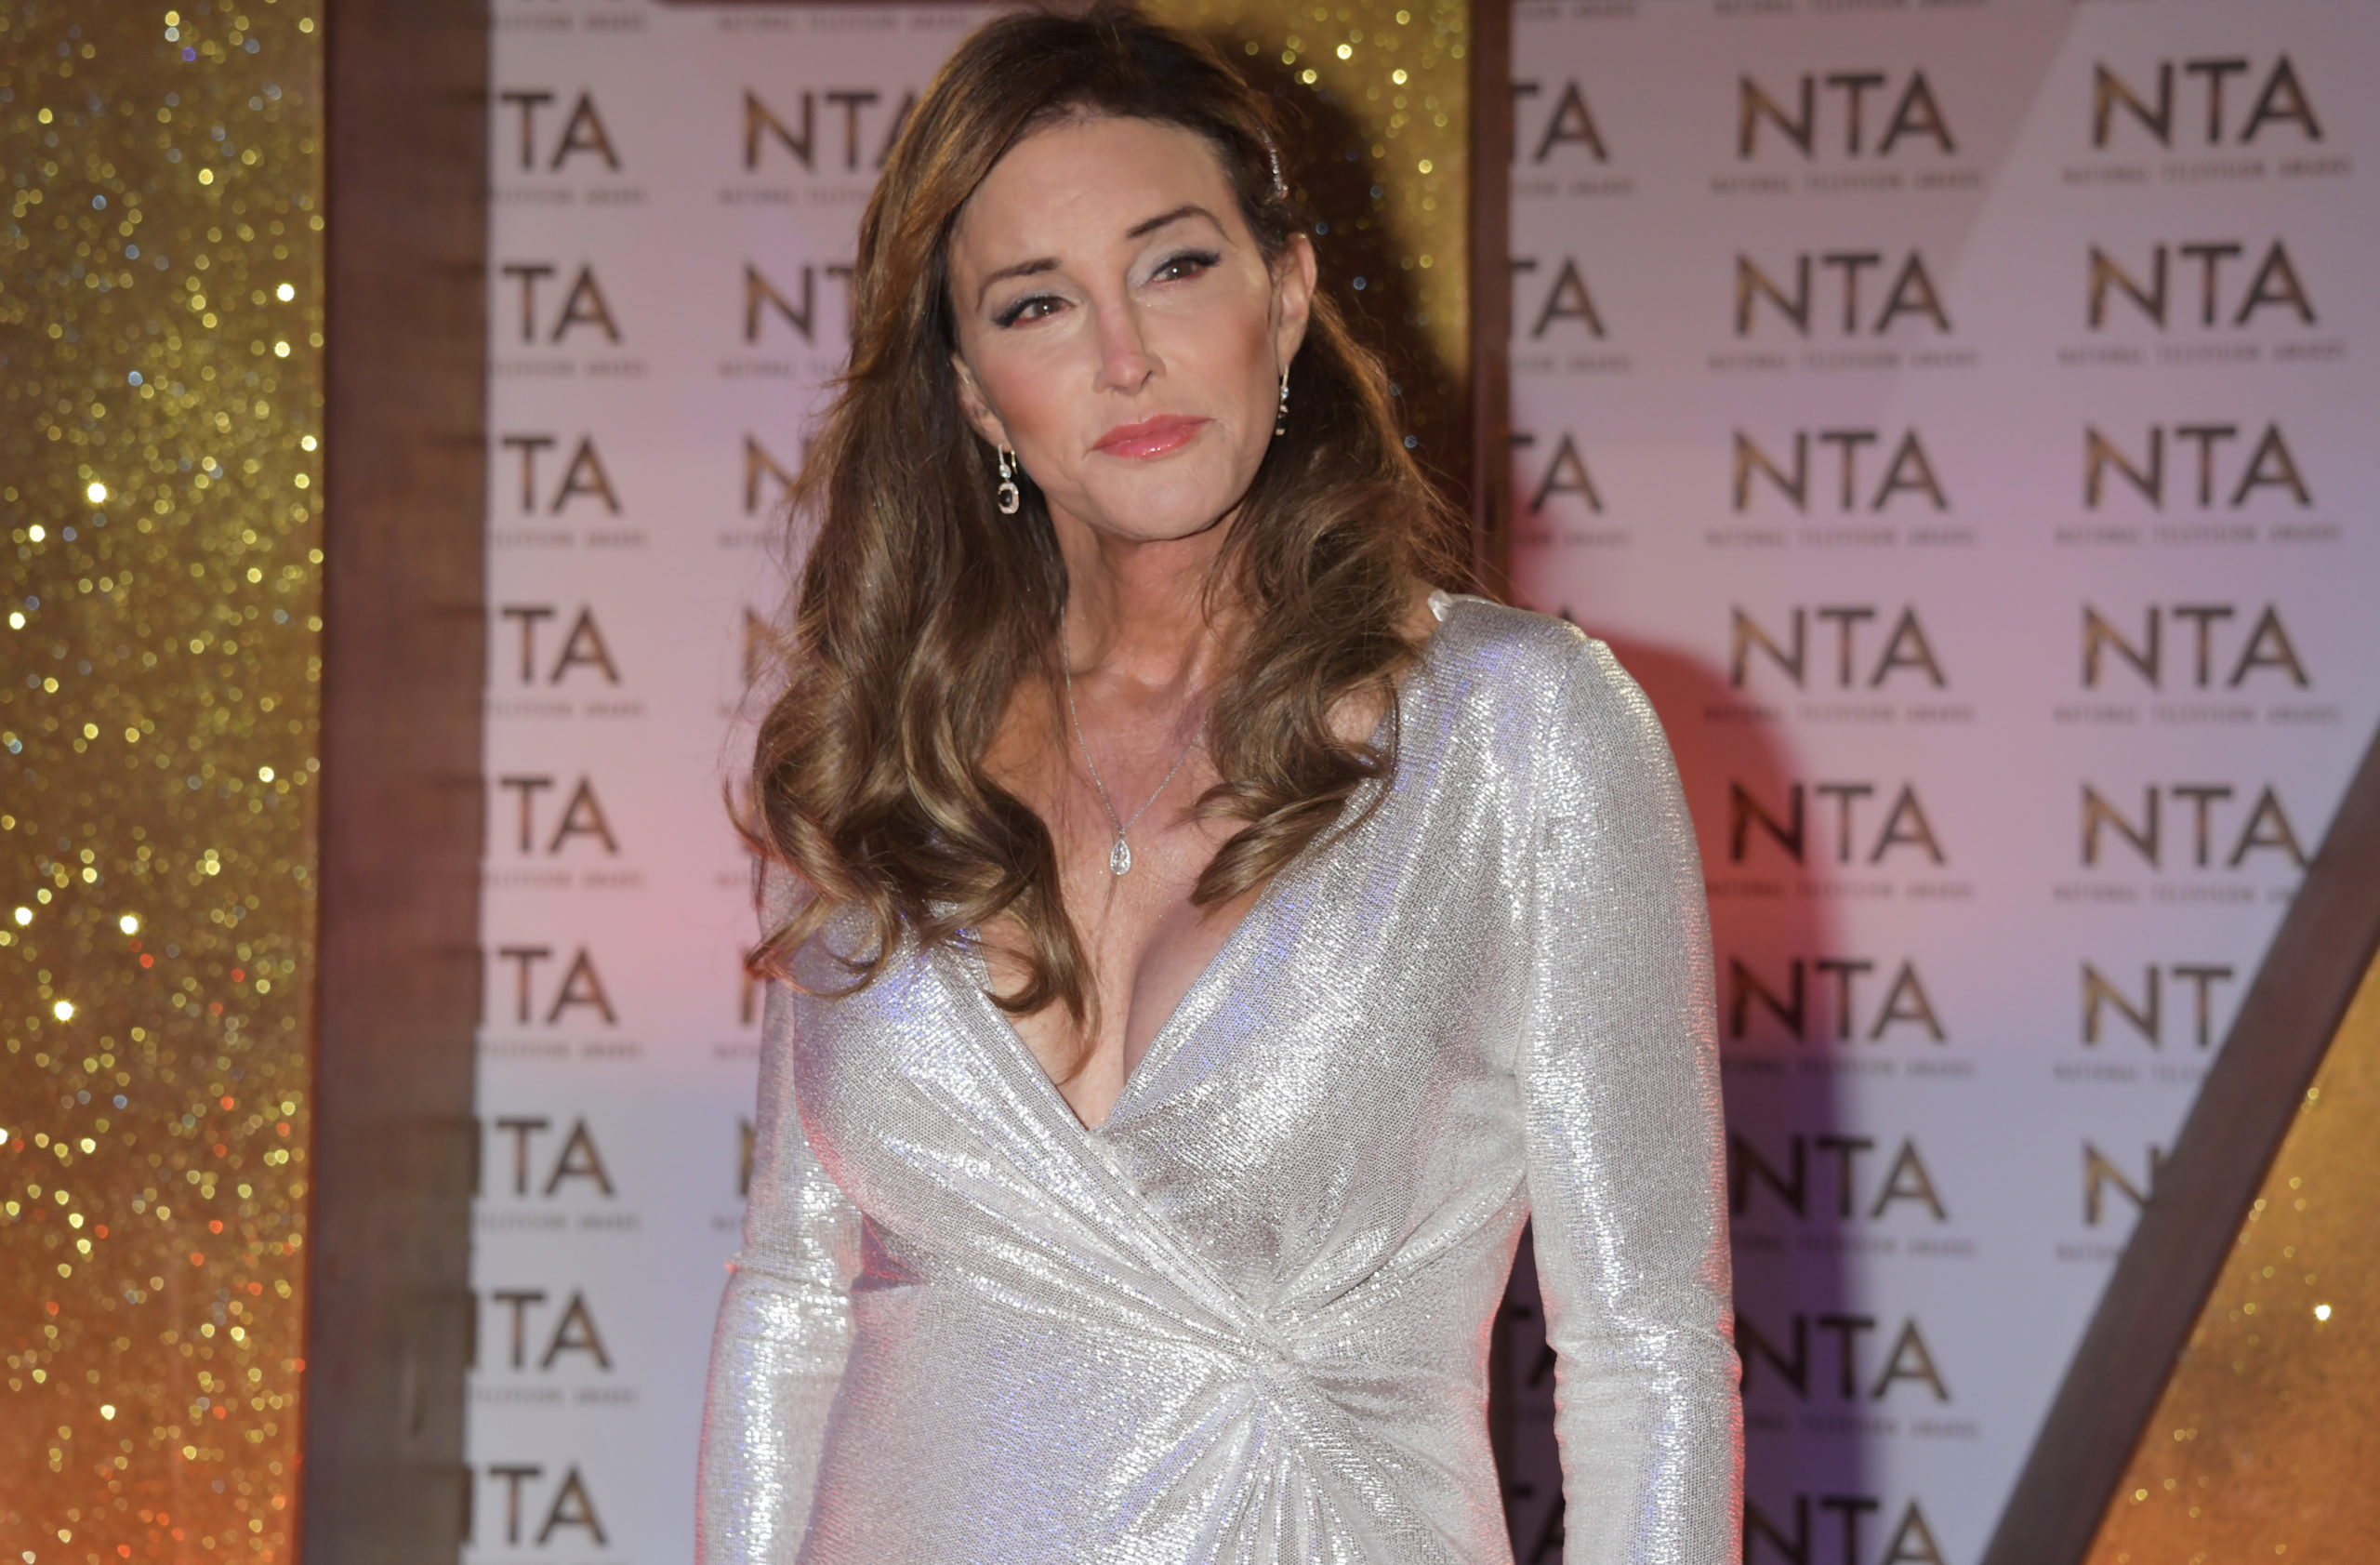 Caitlyn Jenner: Being transgender is what made me an Olympic champion